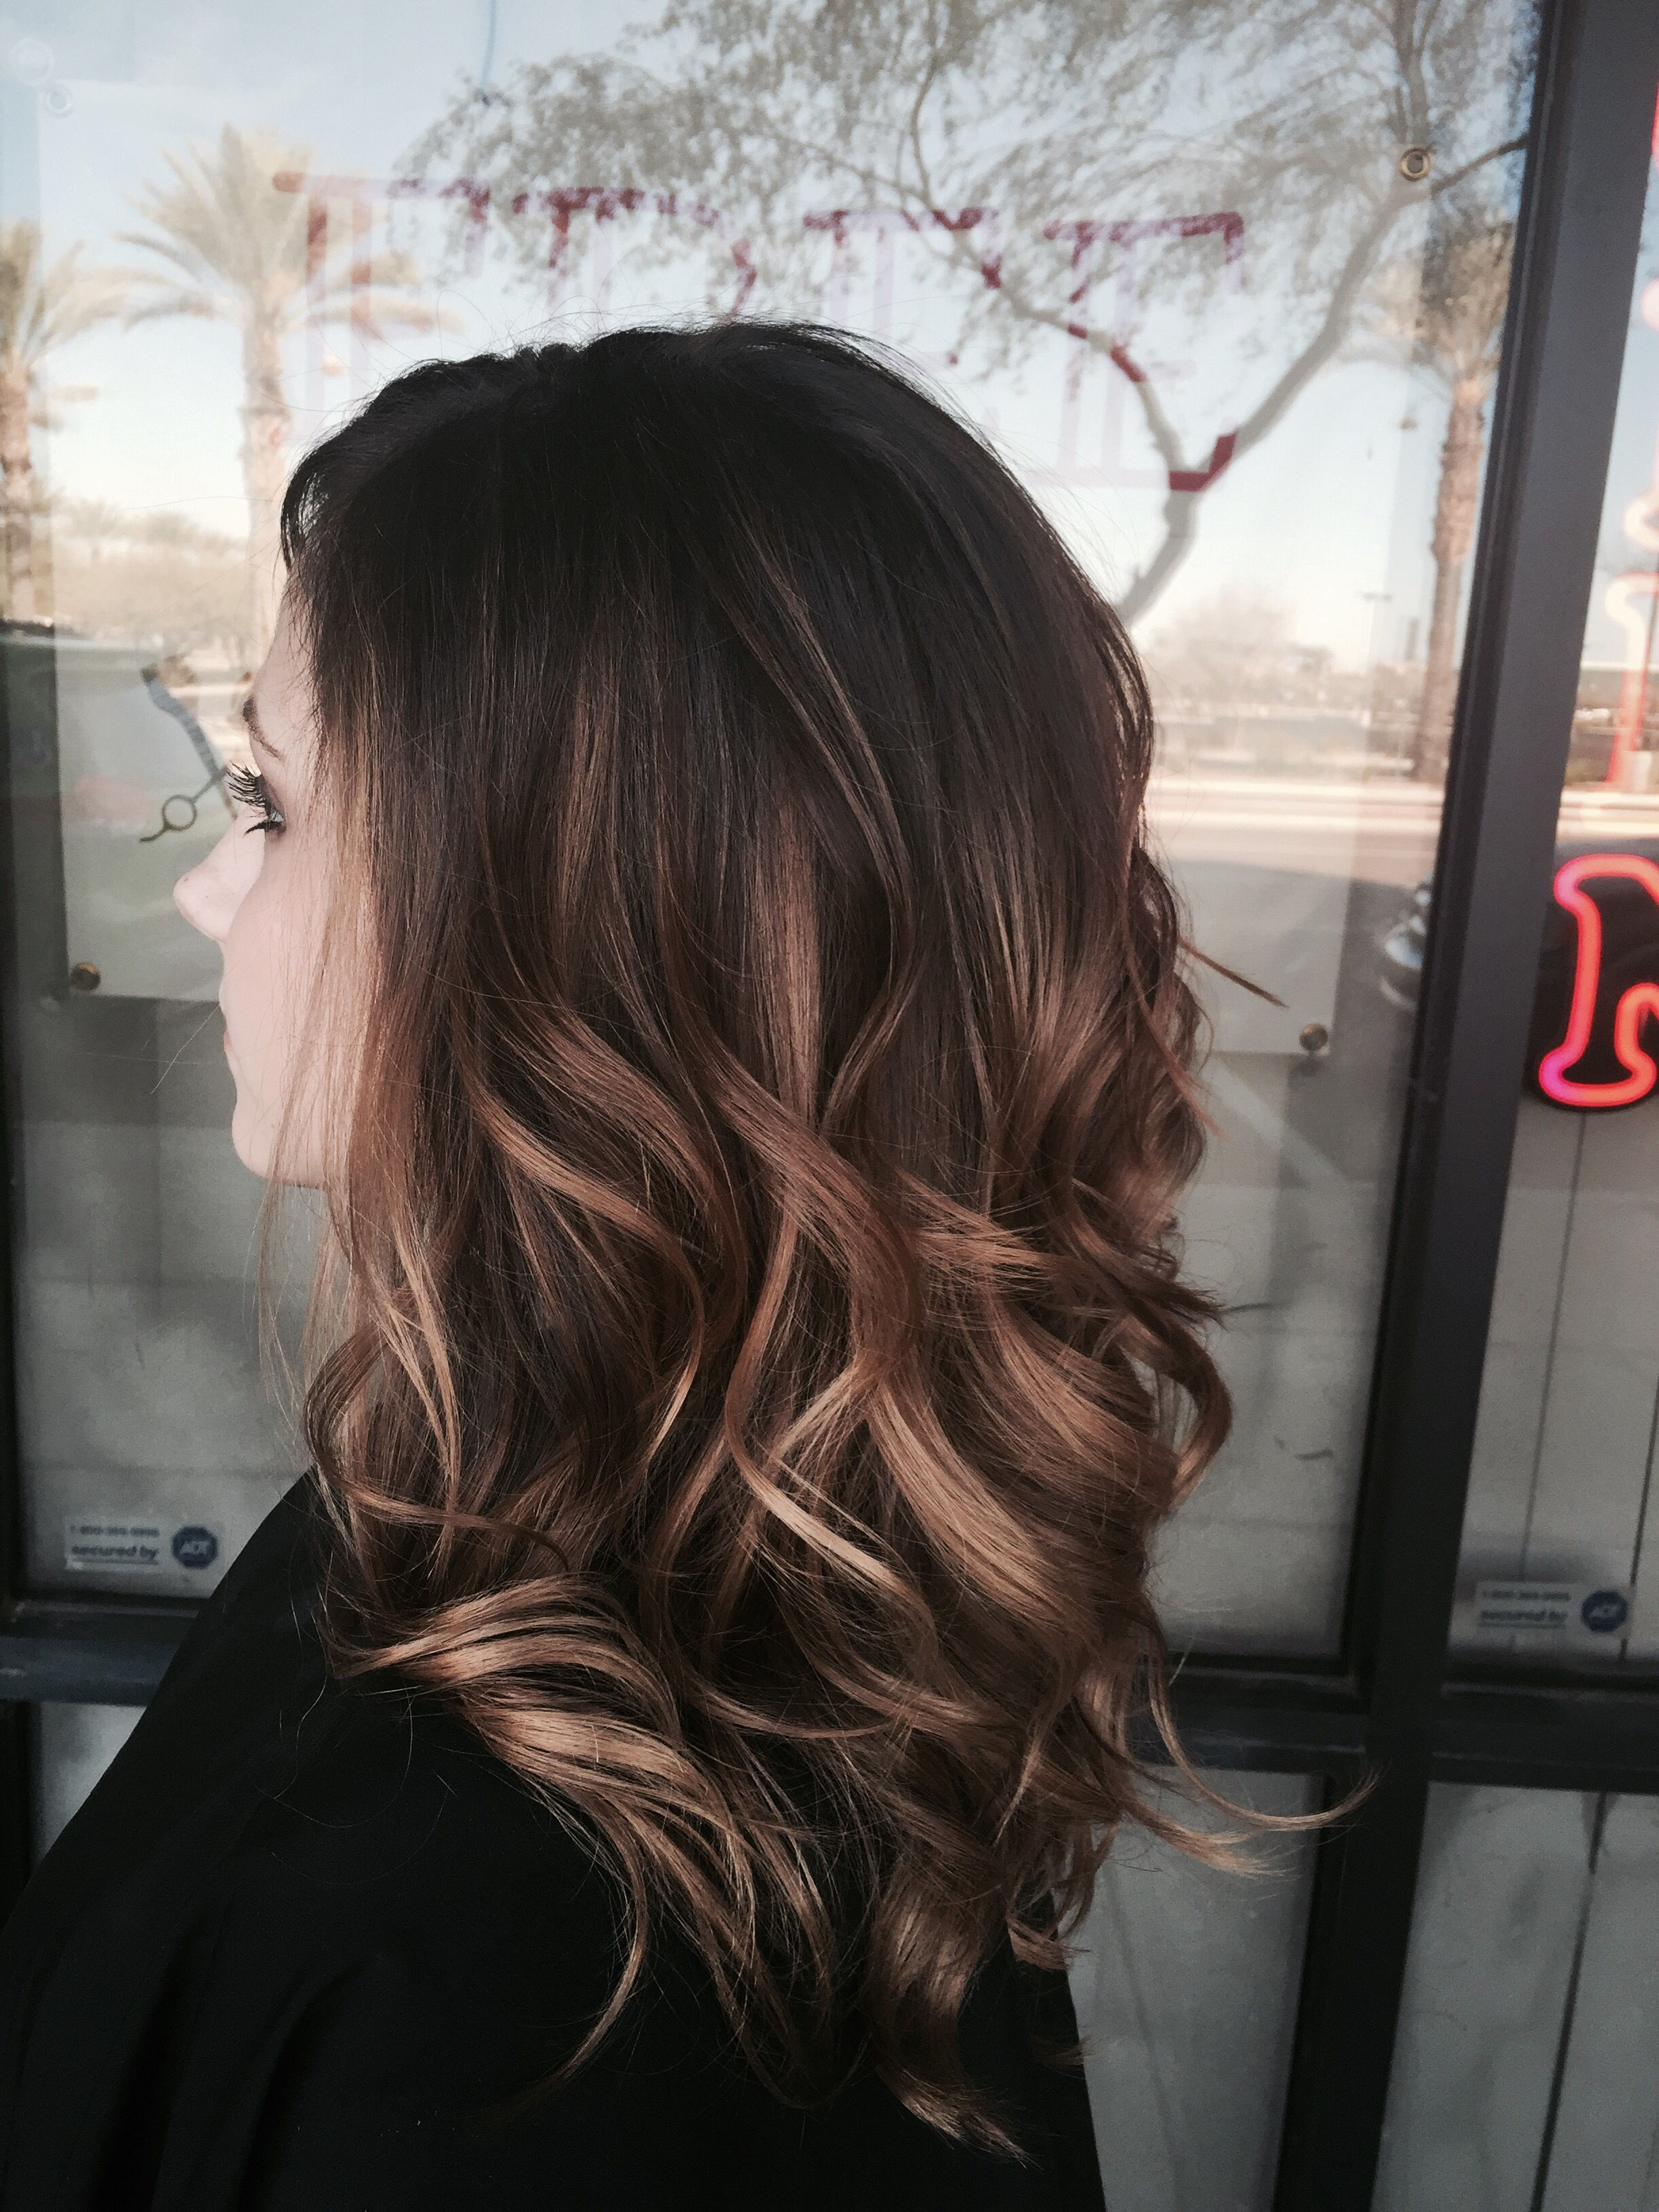 Balayage hairstyle on long hair medium brown with blonde balayage balayage hairstyle on long hair medium brown with blonde balayage the color ill do when i want to go back to a more natural color pmusecretfo Images